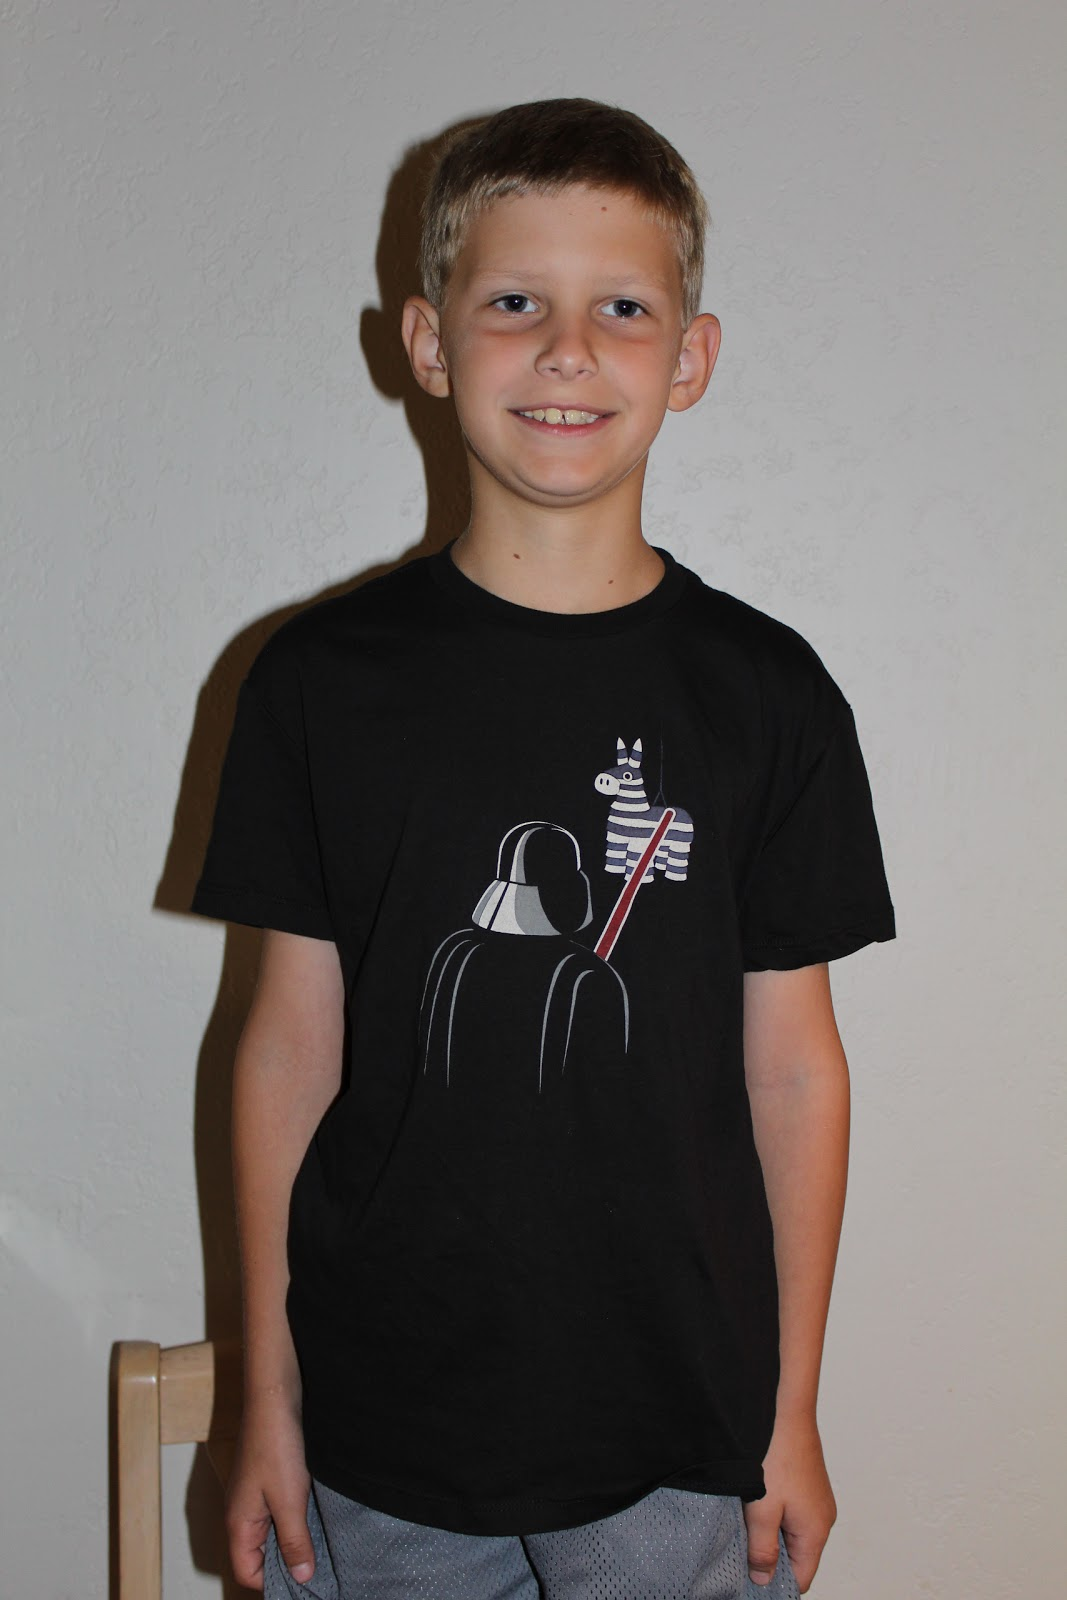 4b0cfdd7 So, I was excited to learn that Headline Shirts now carries kids' tees! My  sons picked out this adorable Vader Pinata shirt for review: